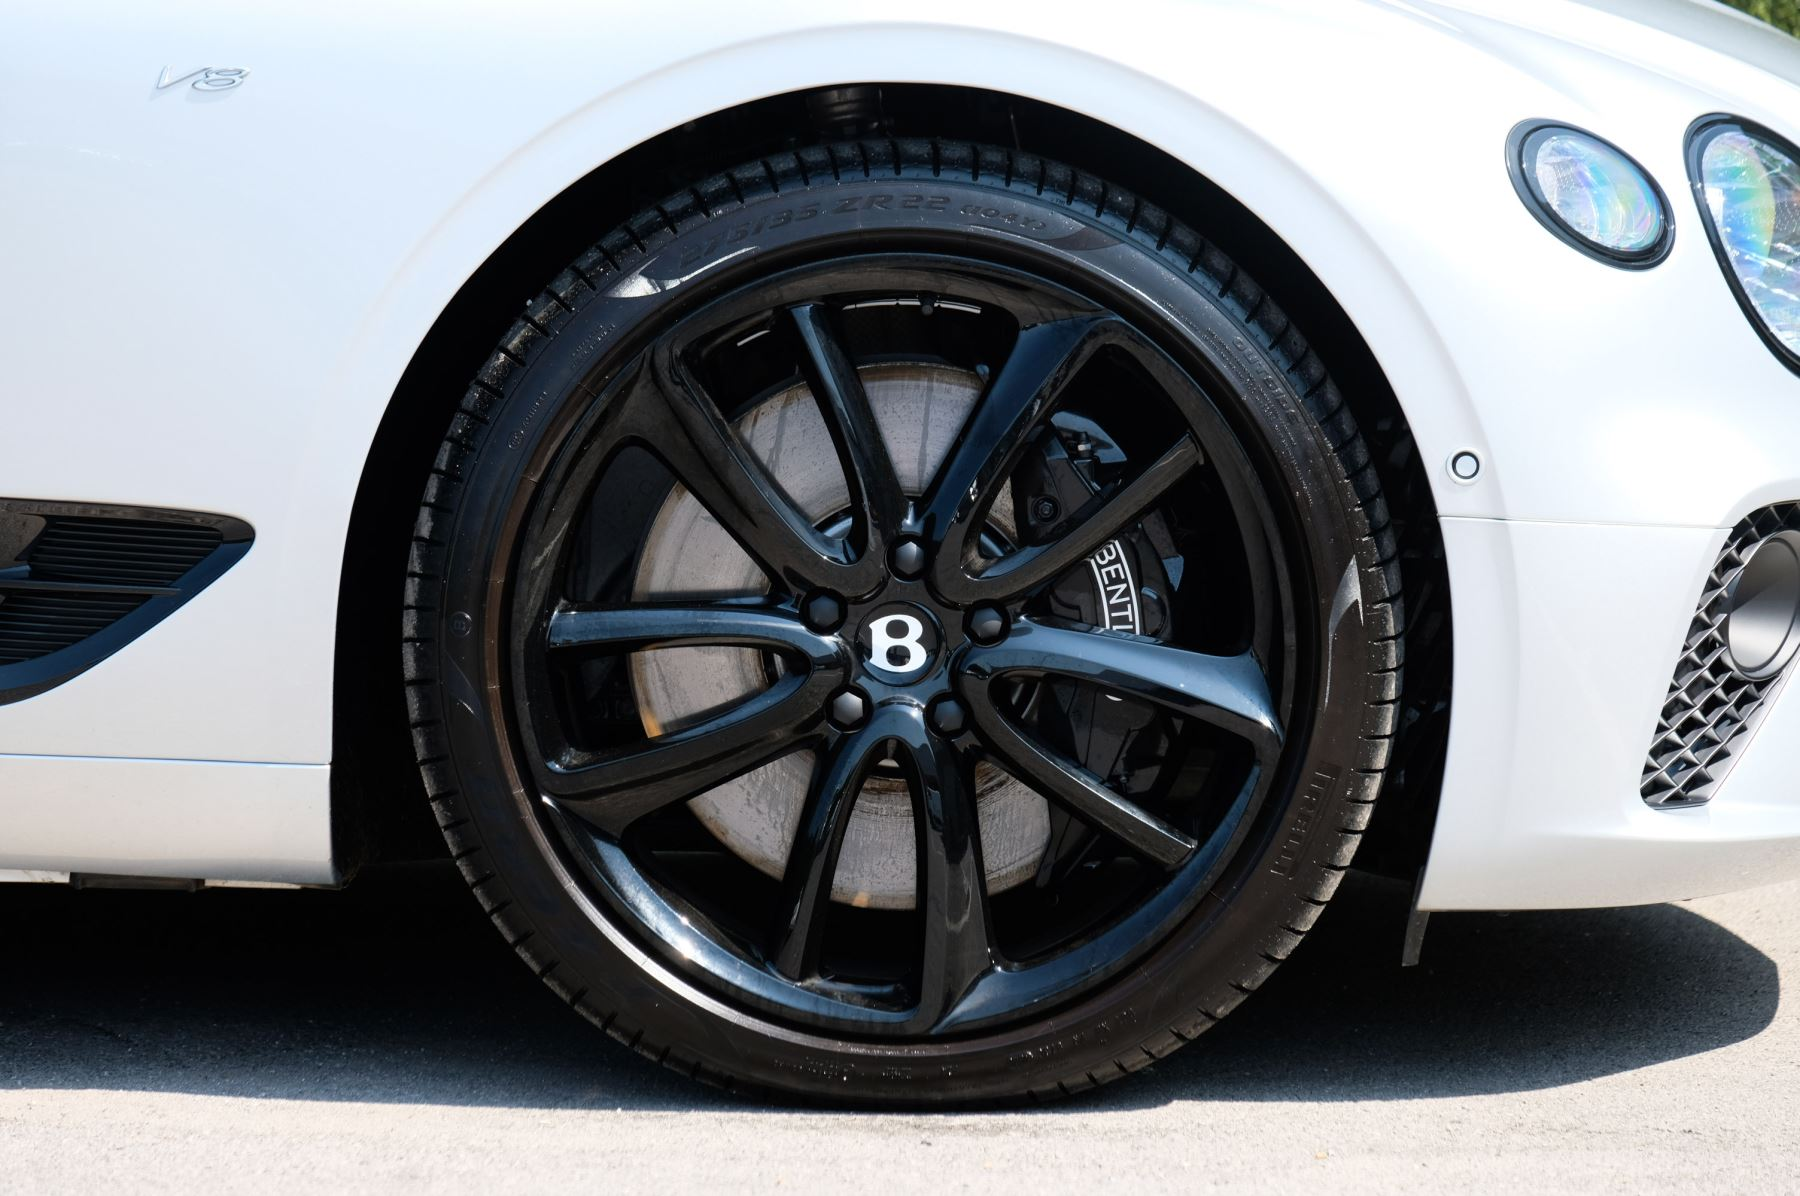 Bentley Continental GTC 4.0 V8 - Mulliner Driving Specification and Blackline Specification with 22 Inch Alloys image 9